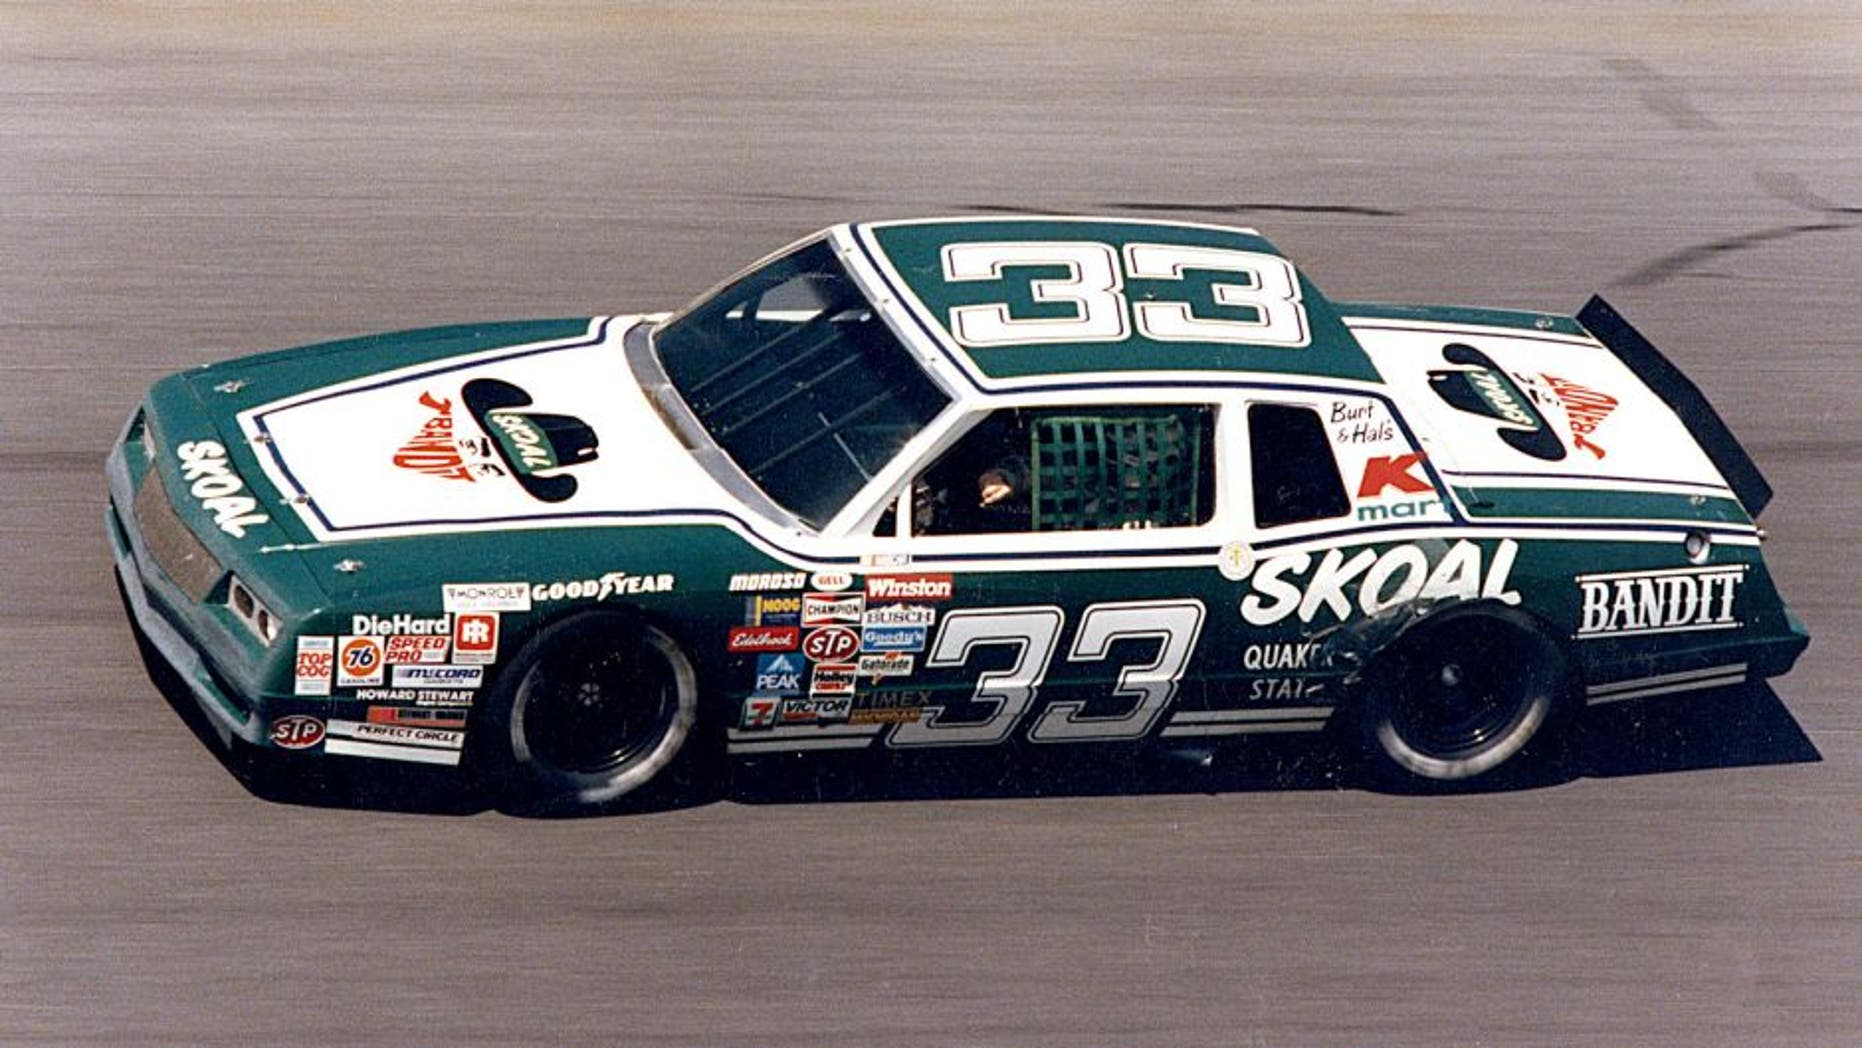 DAYTONA BEACH, FL ? 1984: Driving the Skoal Bandit Chevrolet for car owners Hal Needham and Burt Reynolds, Harry Gant had a good year at Daytona International Speedway, finishing sixth in the Daytona 500 and second in the Firecracker 400. (Photo by ISC Images & Archives via Getty Images)